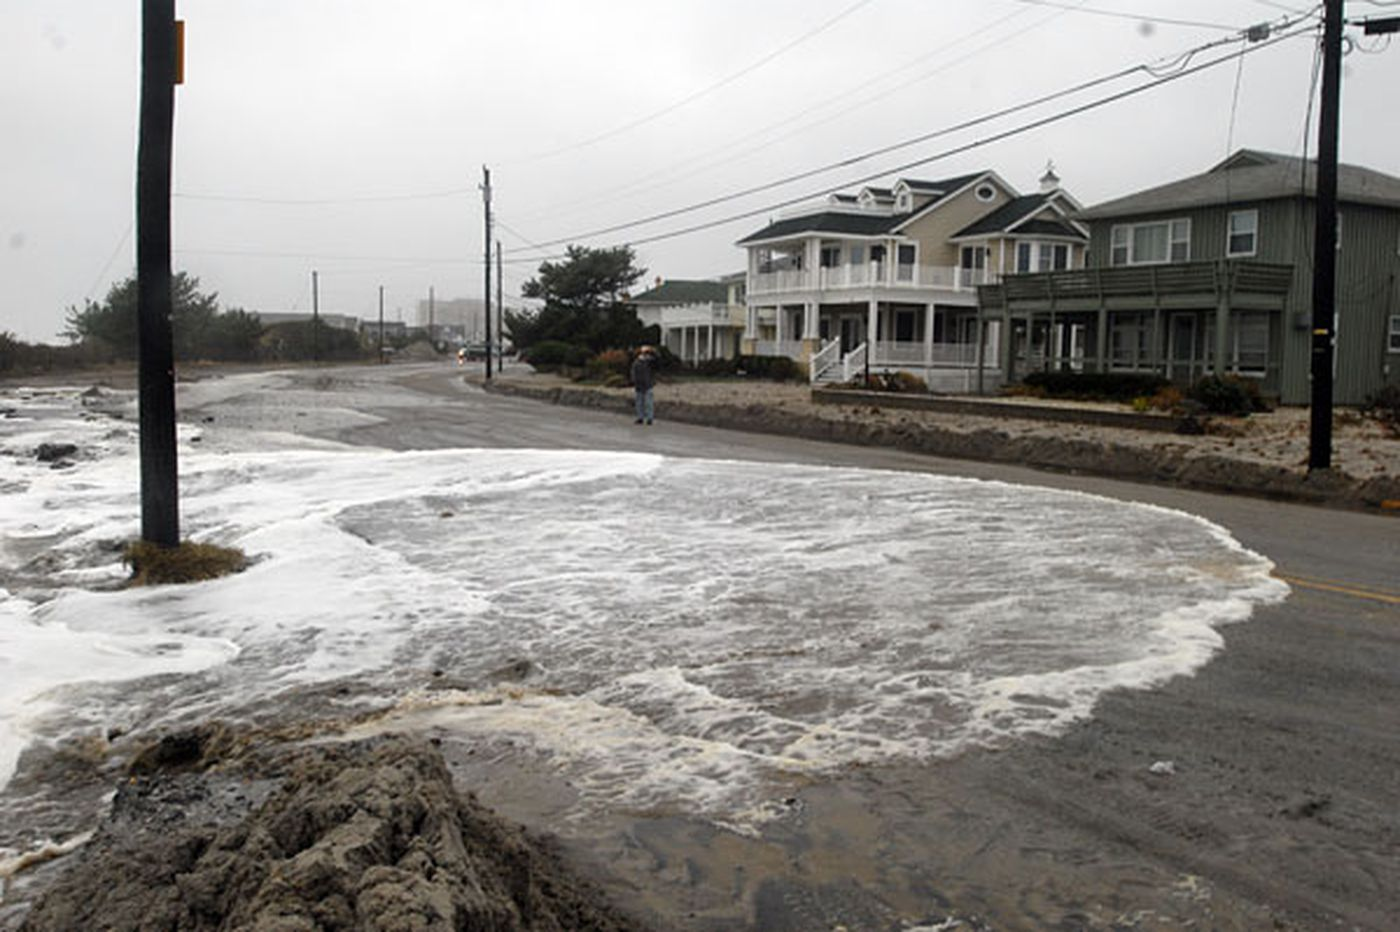 Sea level rise's impact on property values will be greatest